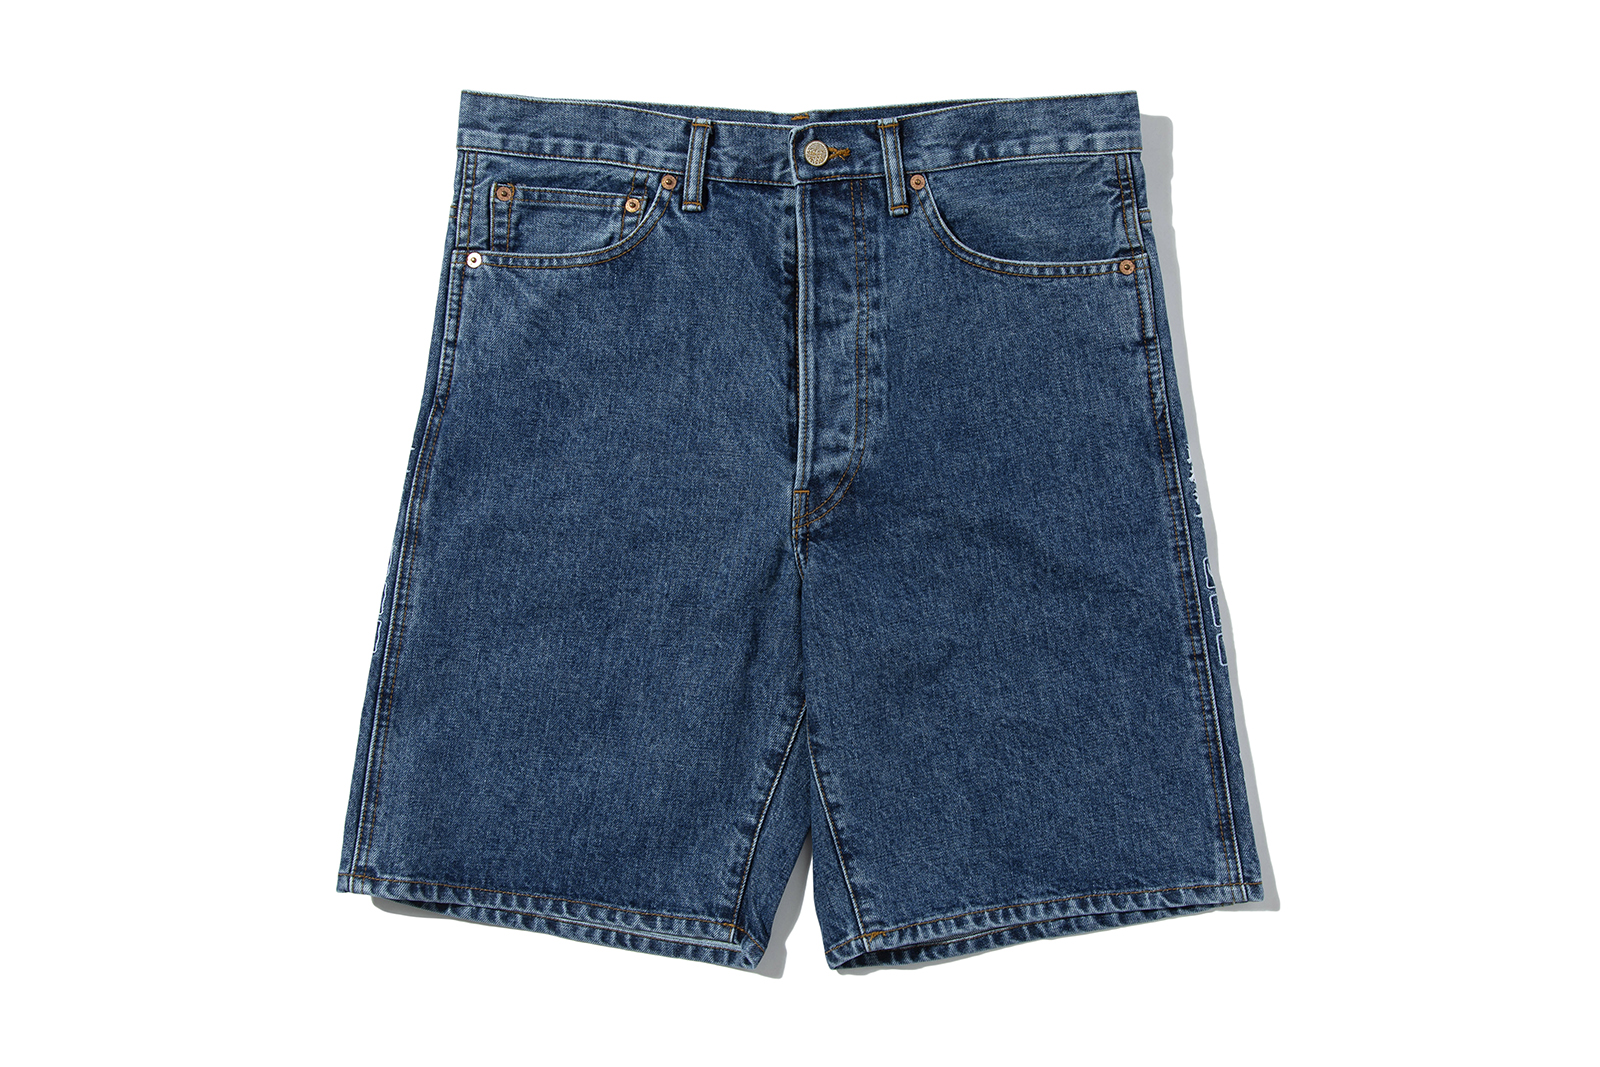 handle-with-care-denim-shorts-blue_p2